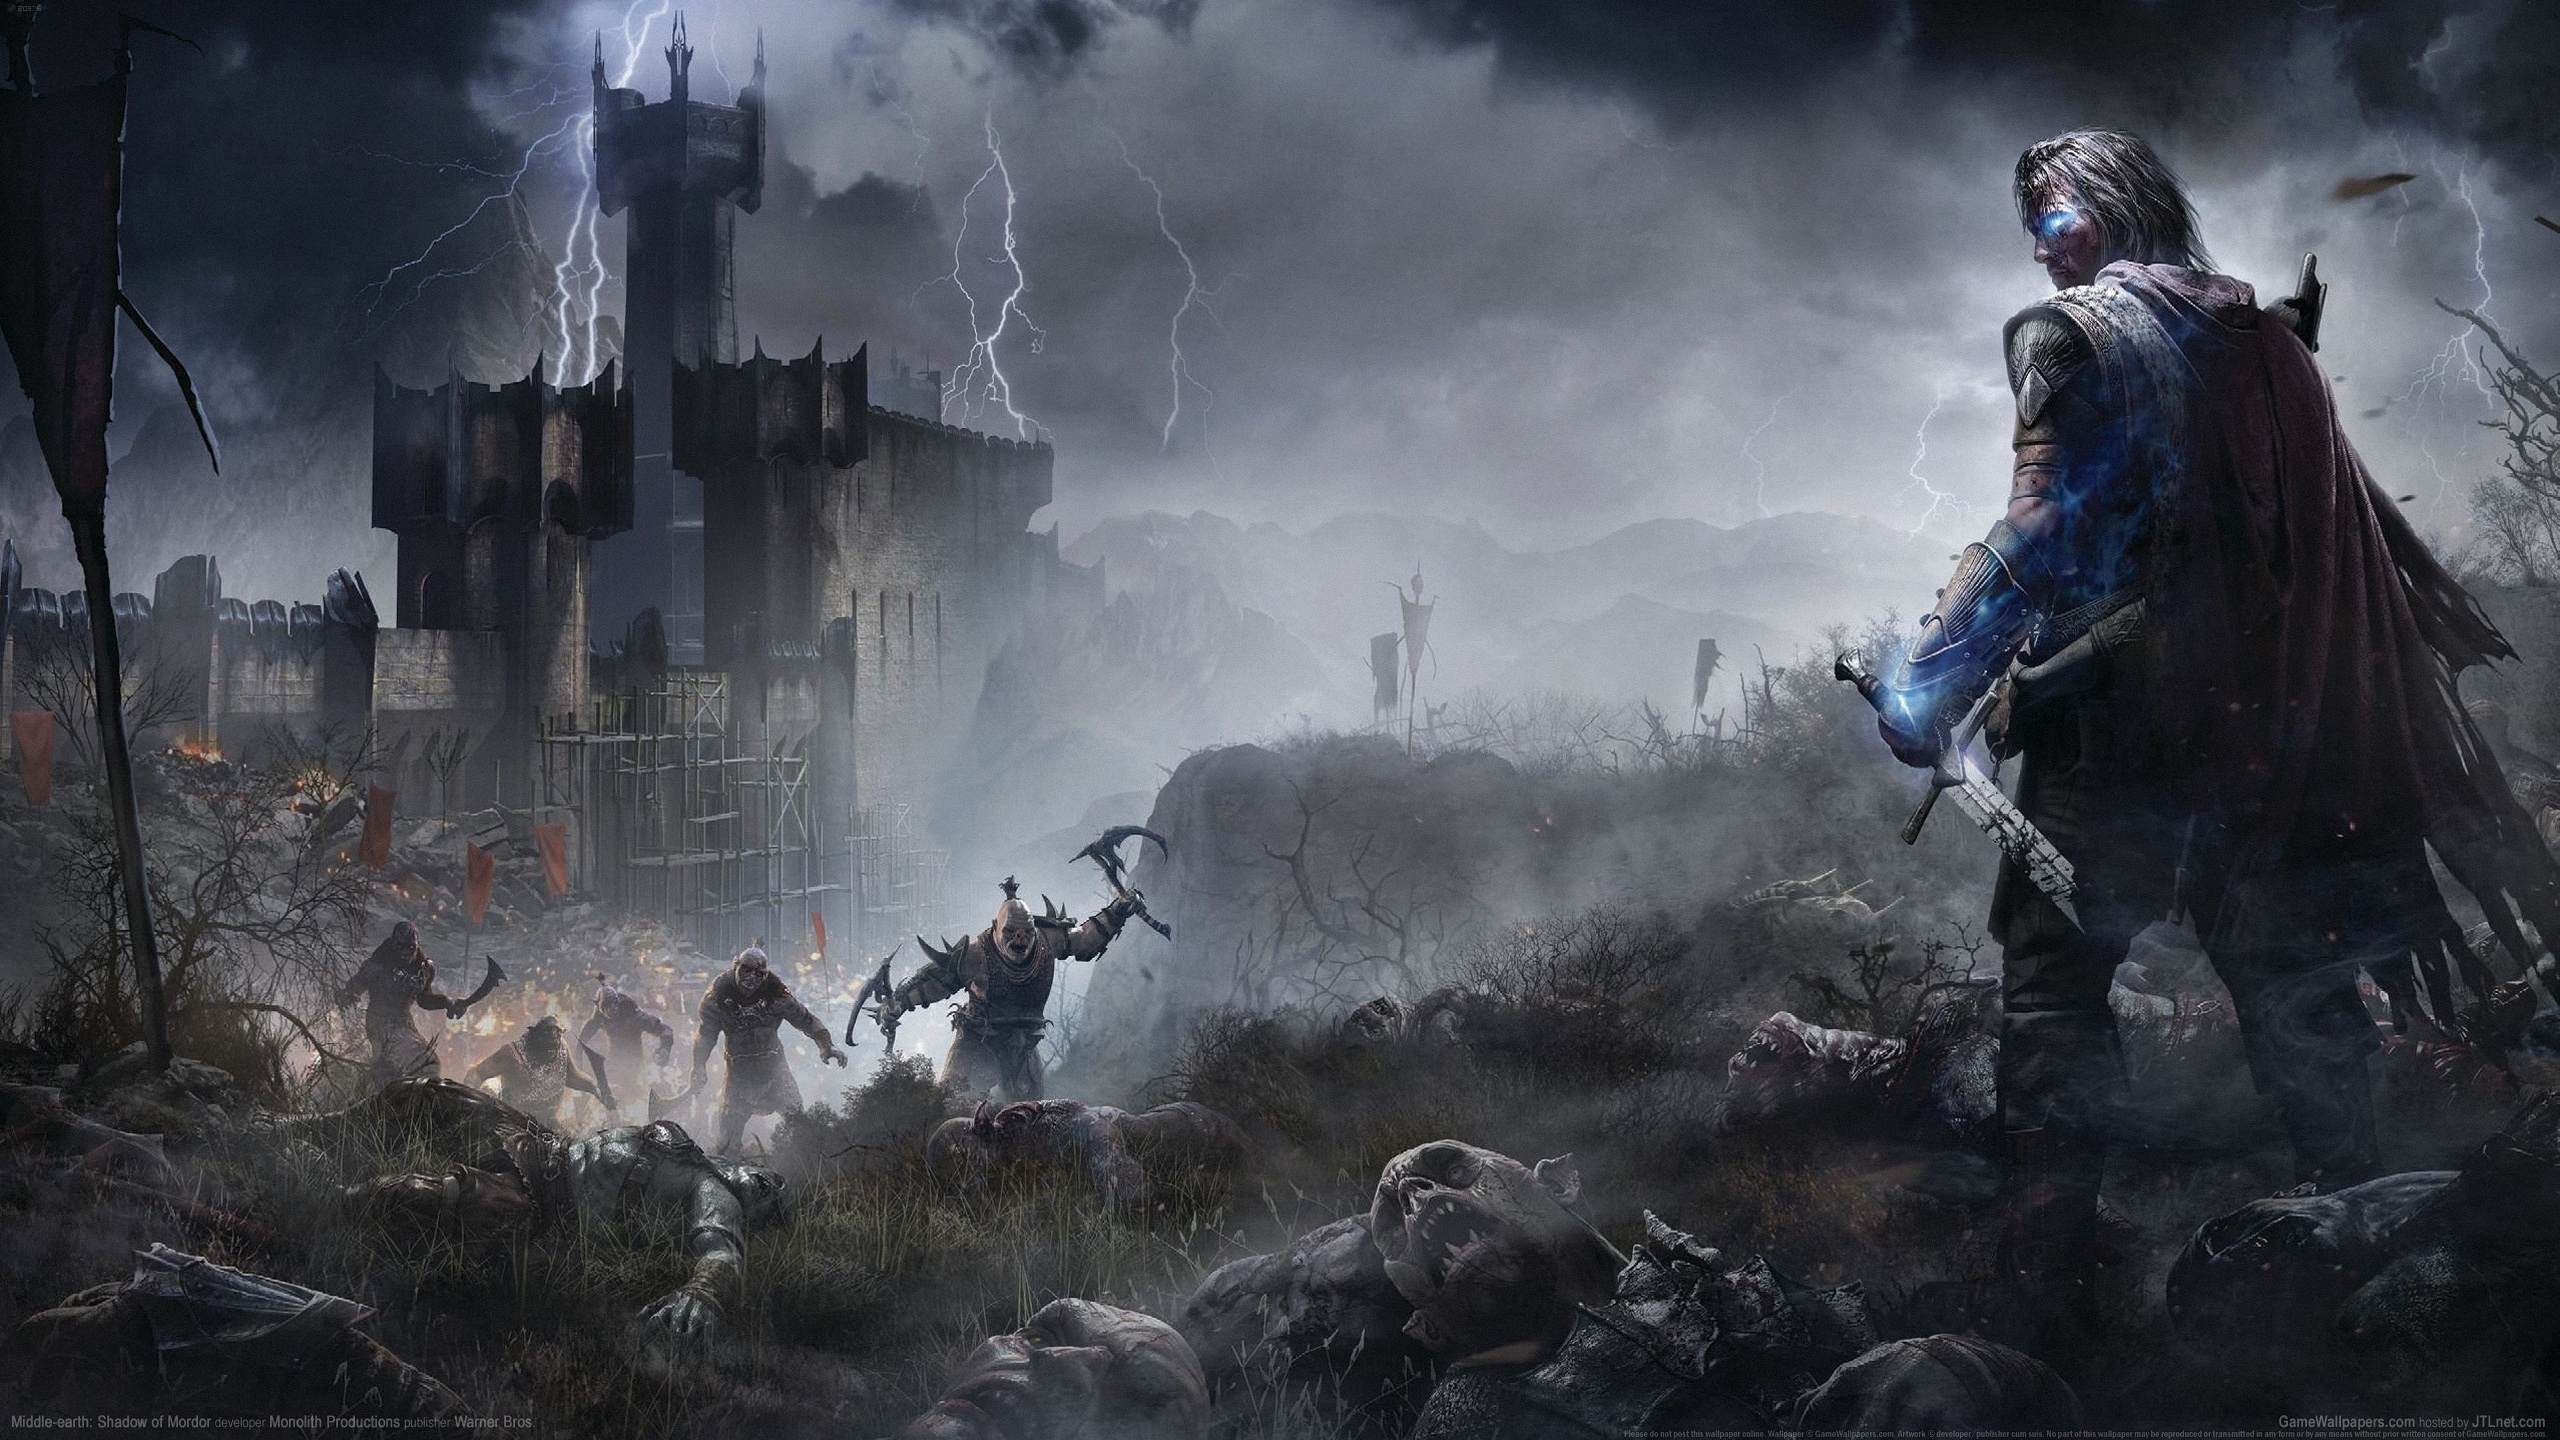 middle-earth: shadow of mordor full hd wallpaper and background